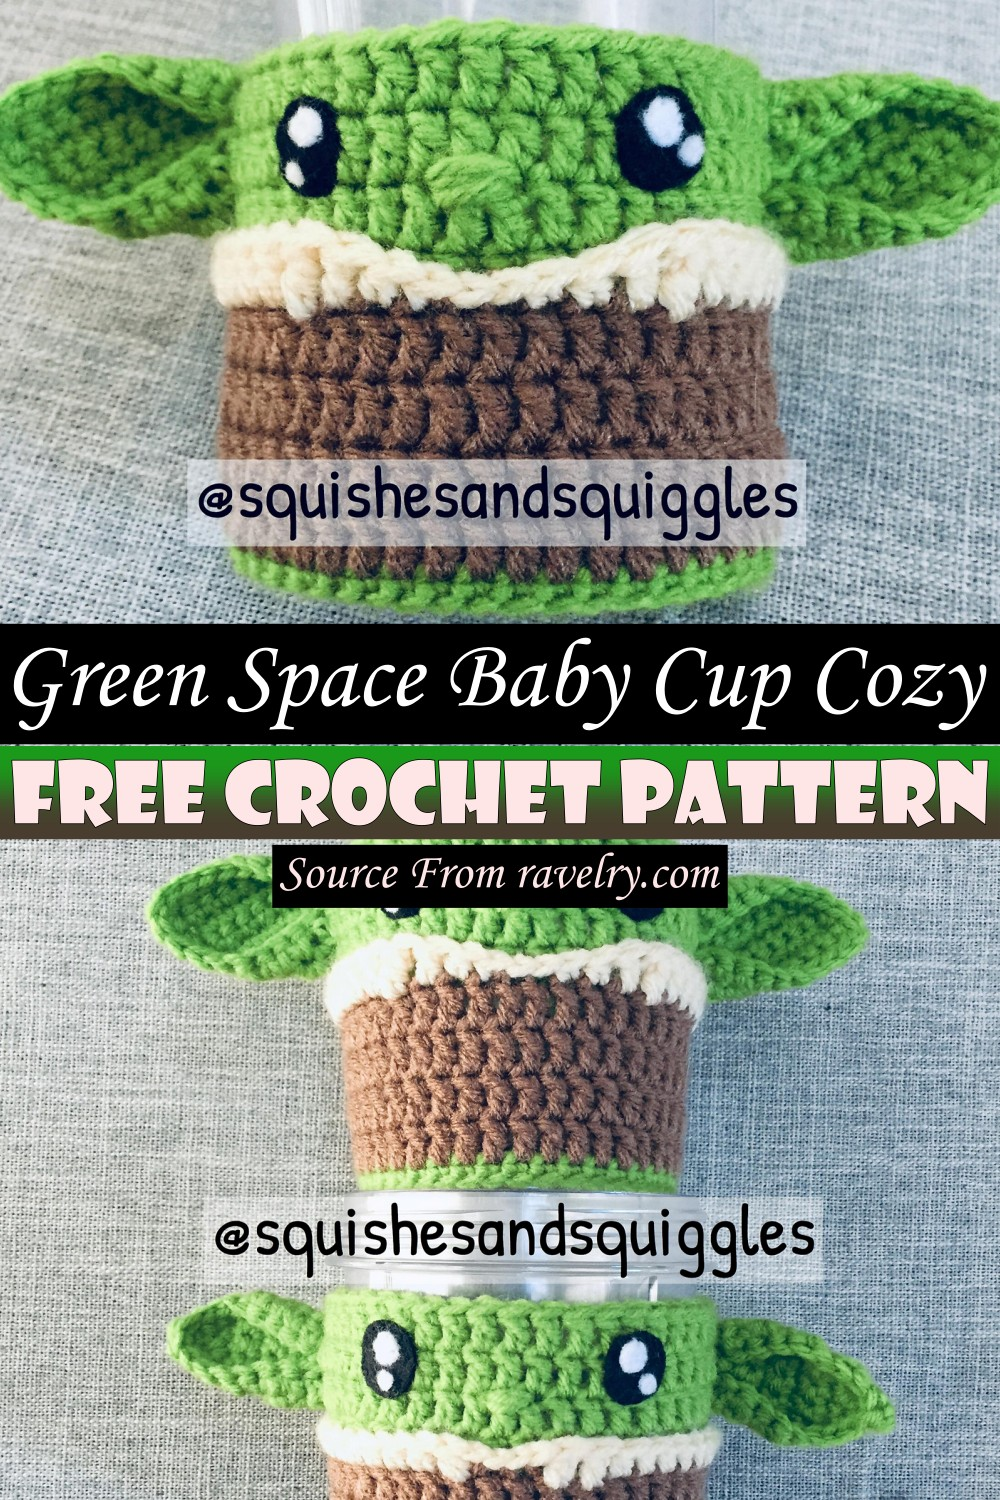 Free Crochet Green Space Baby Cup Cozy Pattern